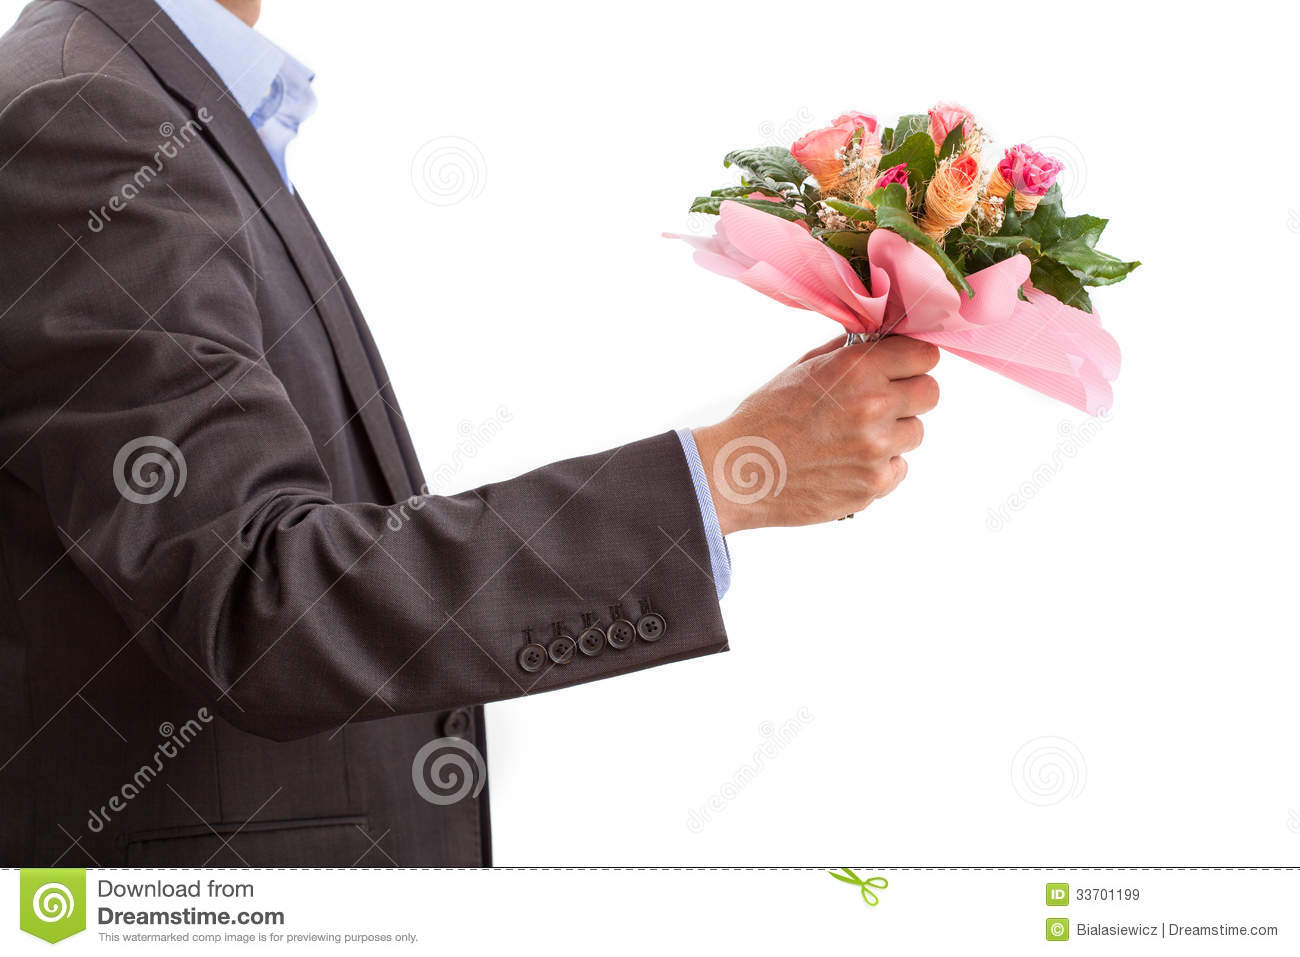 Flowers on first date yes or no